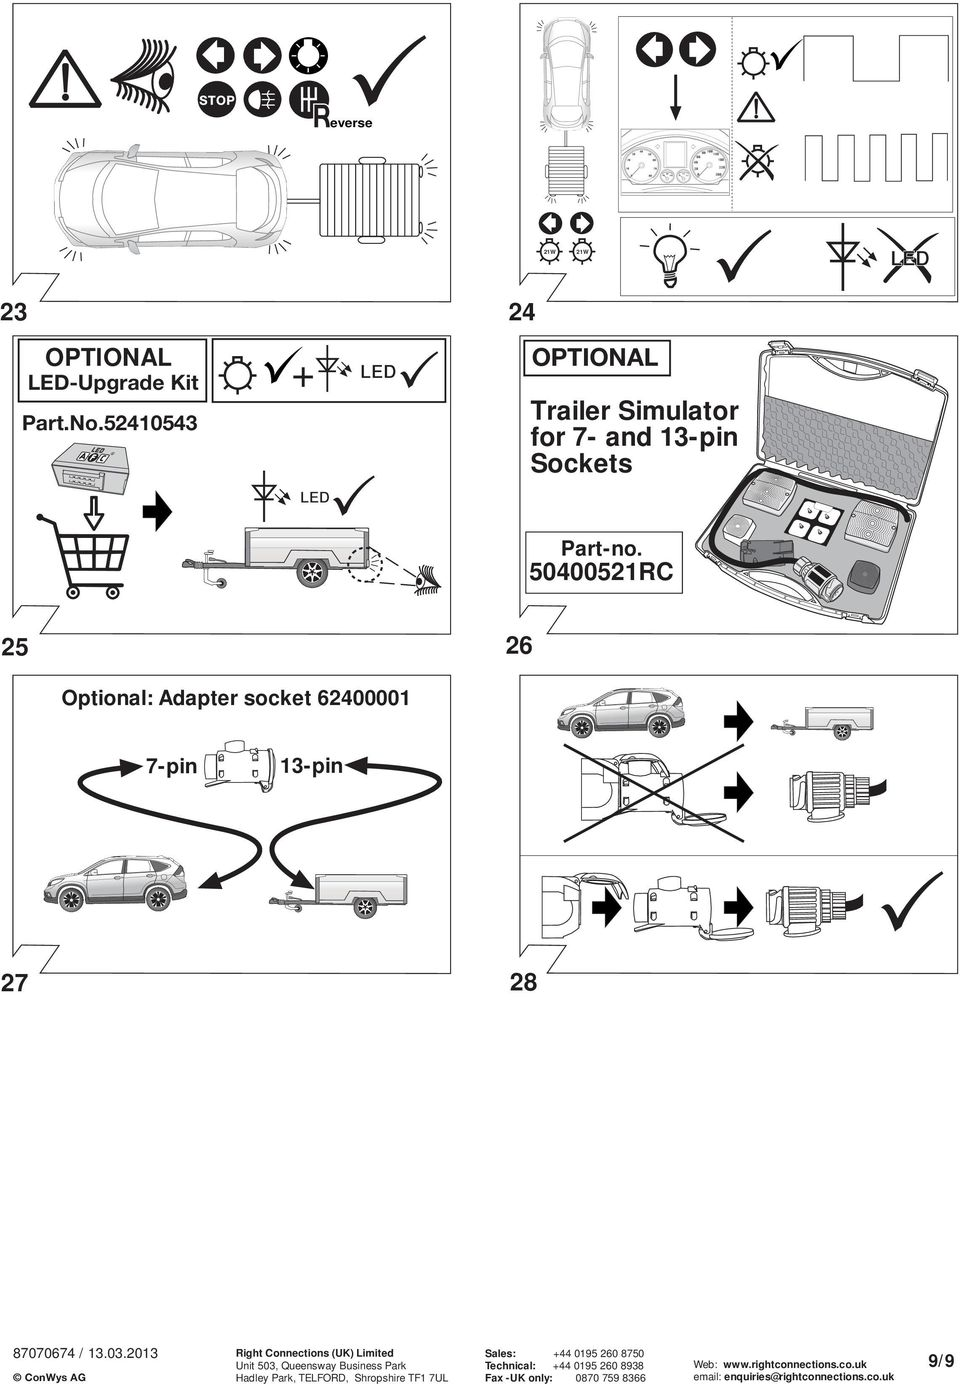 SUPPLIERS OF TOWBAR WIRING KITS FOR THE UK. ConWys AG - PDF ... on suspension diagram, headlight adjustment diagram, fog lights diagram,